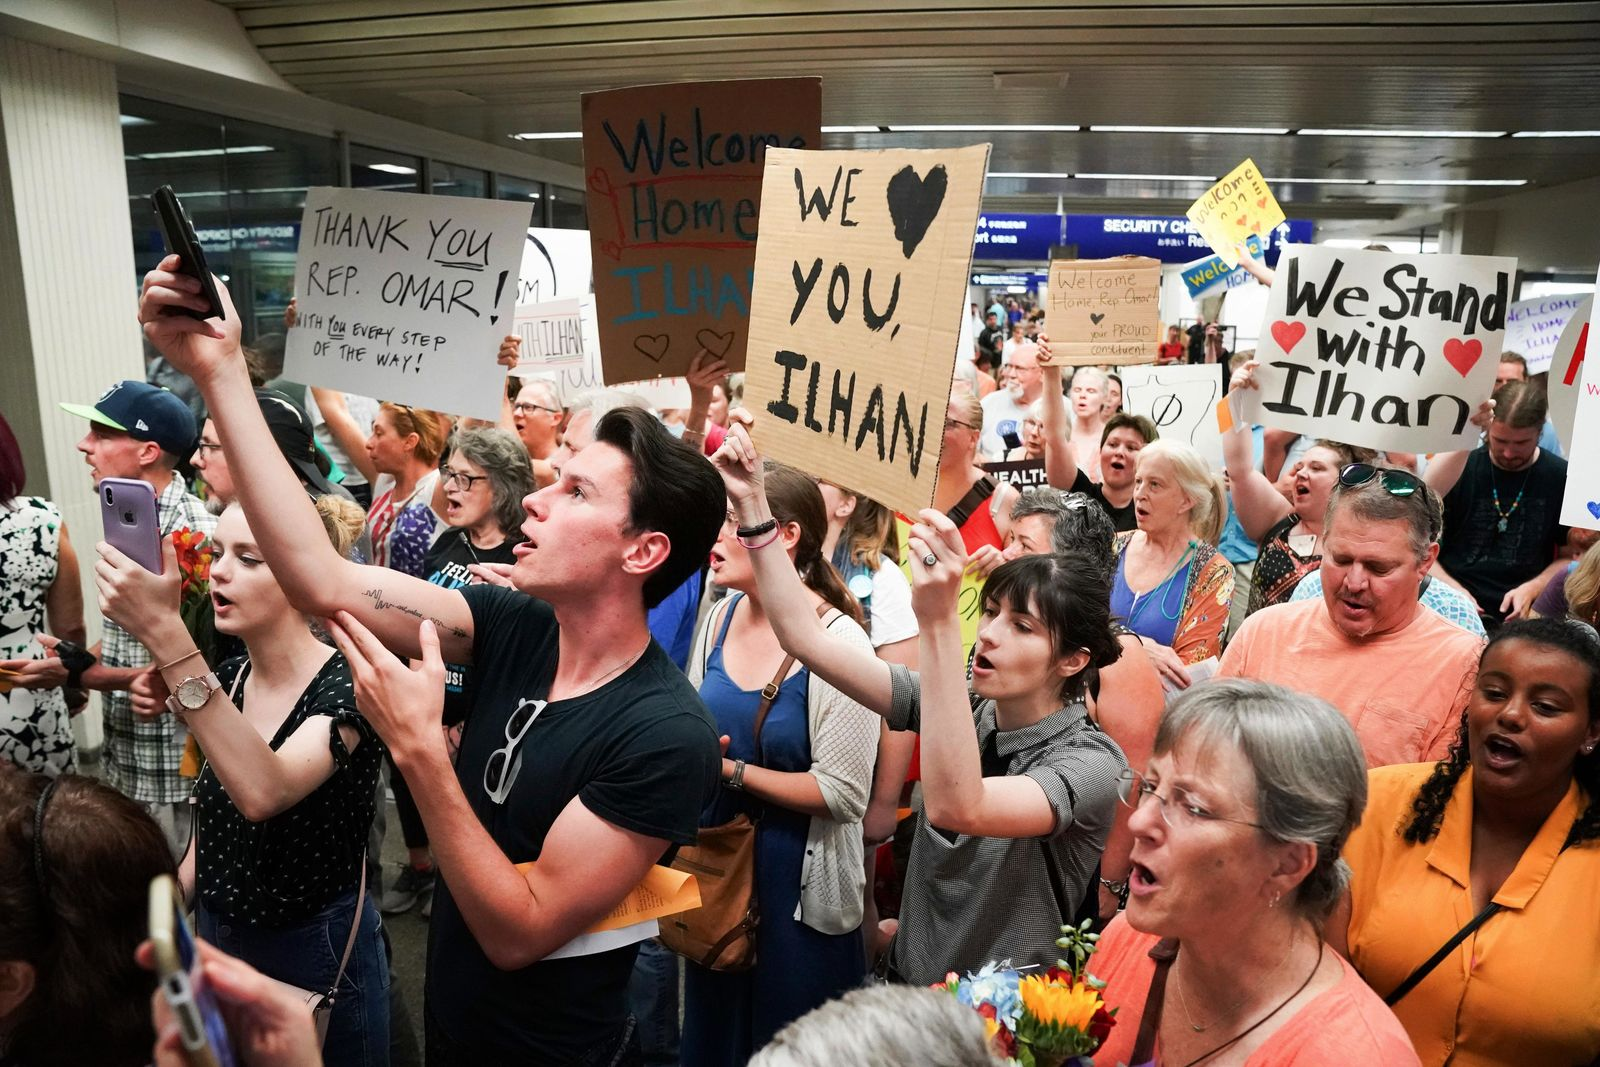 Supporters greet U.S. Rep. Ilhan Omar after she arrived home, at Minneapolis–Saint Paul International Airport, Thursday, July 18, 2019, in Minnesota. (Glen Stubbe/Star Tribune via AP)